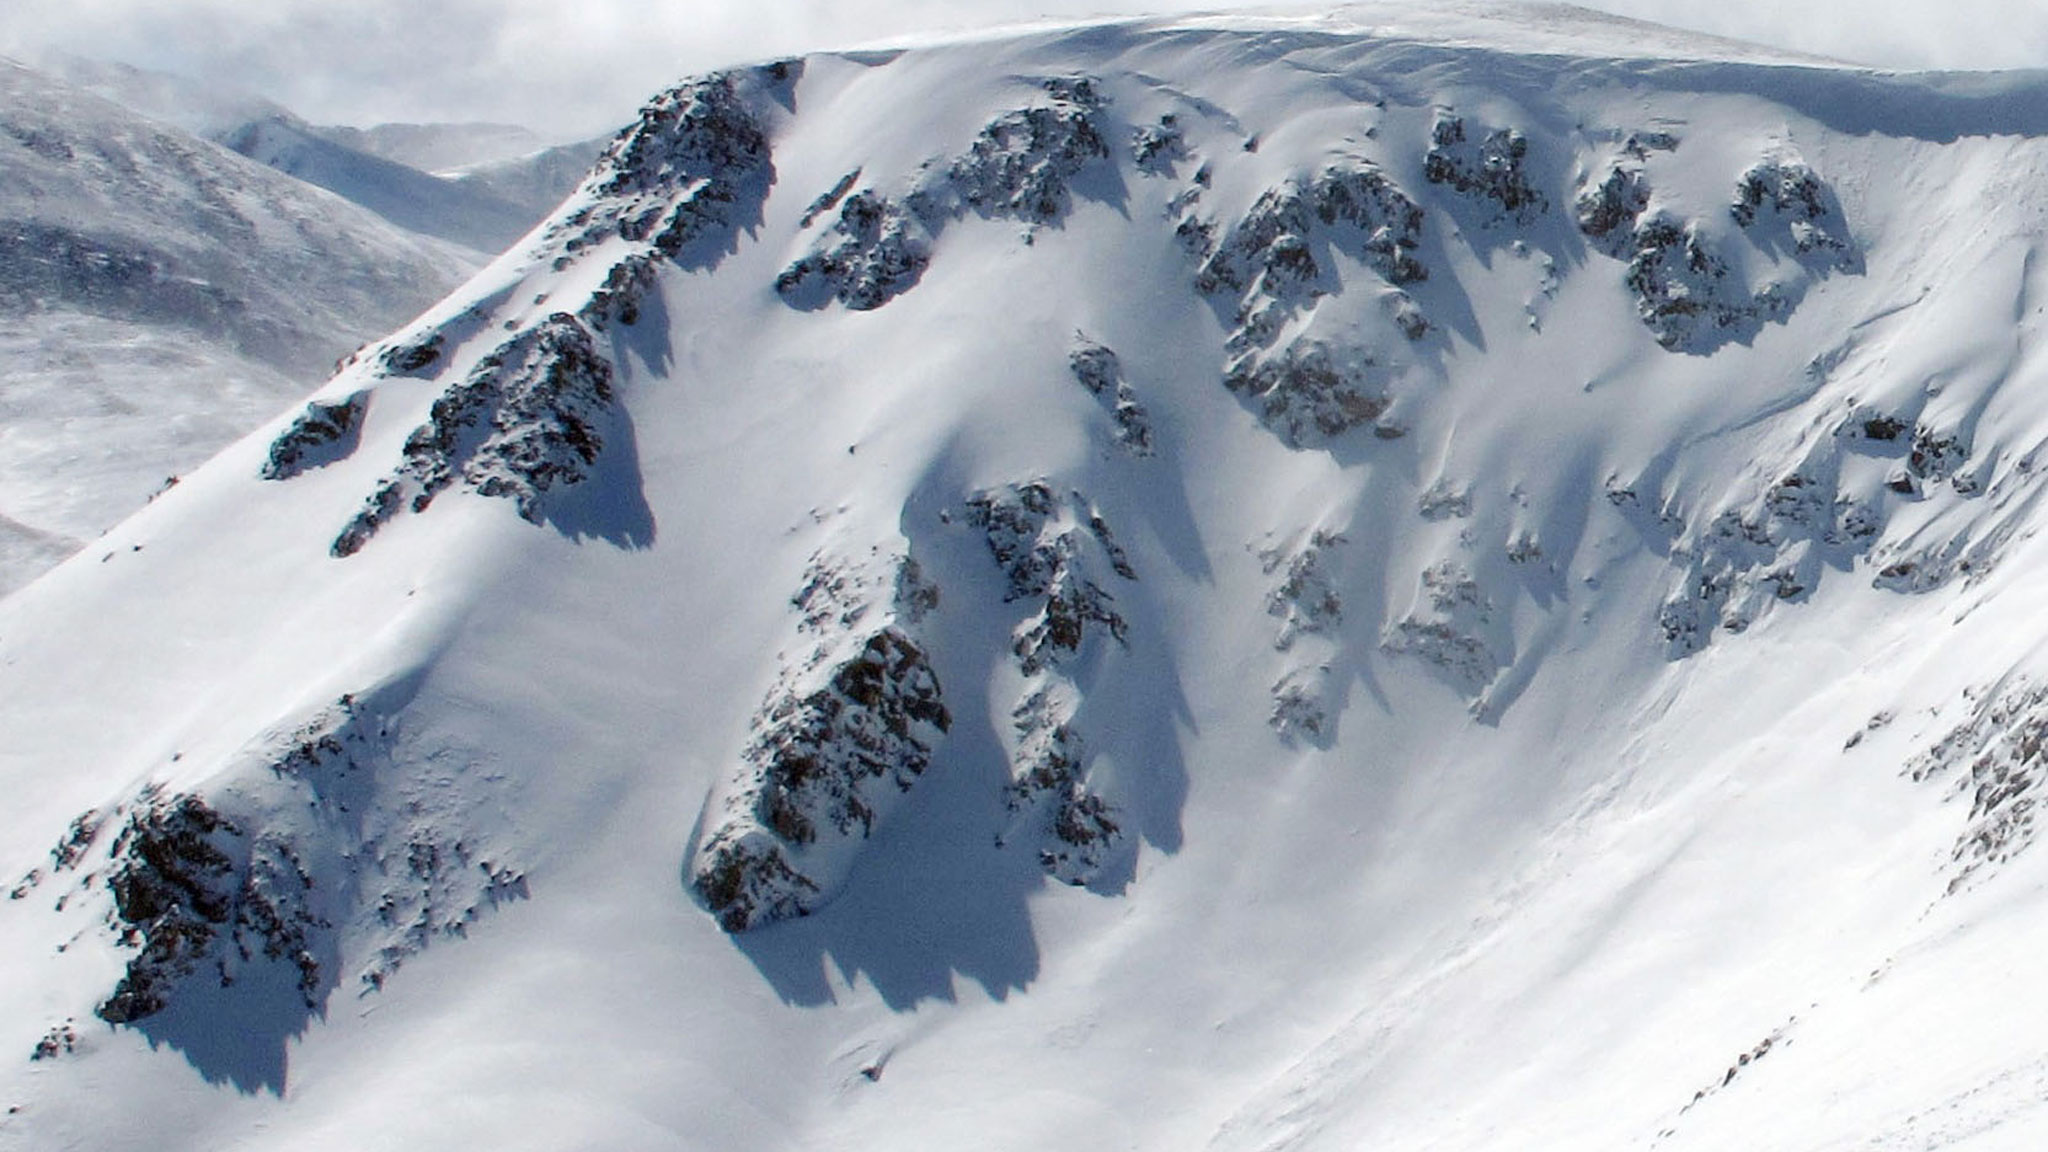 This is the north-facing cirque that dozens of skiers were dropping in April, many without avalanche-rescue gear. The terrain will be inbounds and lift accessed this winter, but another, steeper cirque lurks just north of Breckenridge's new boundary.